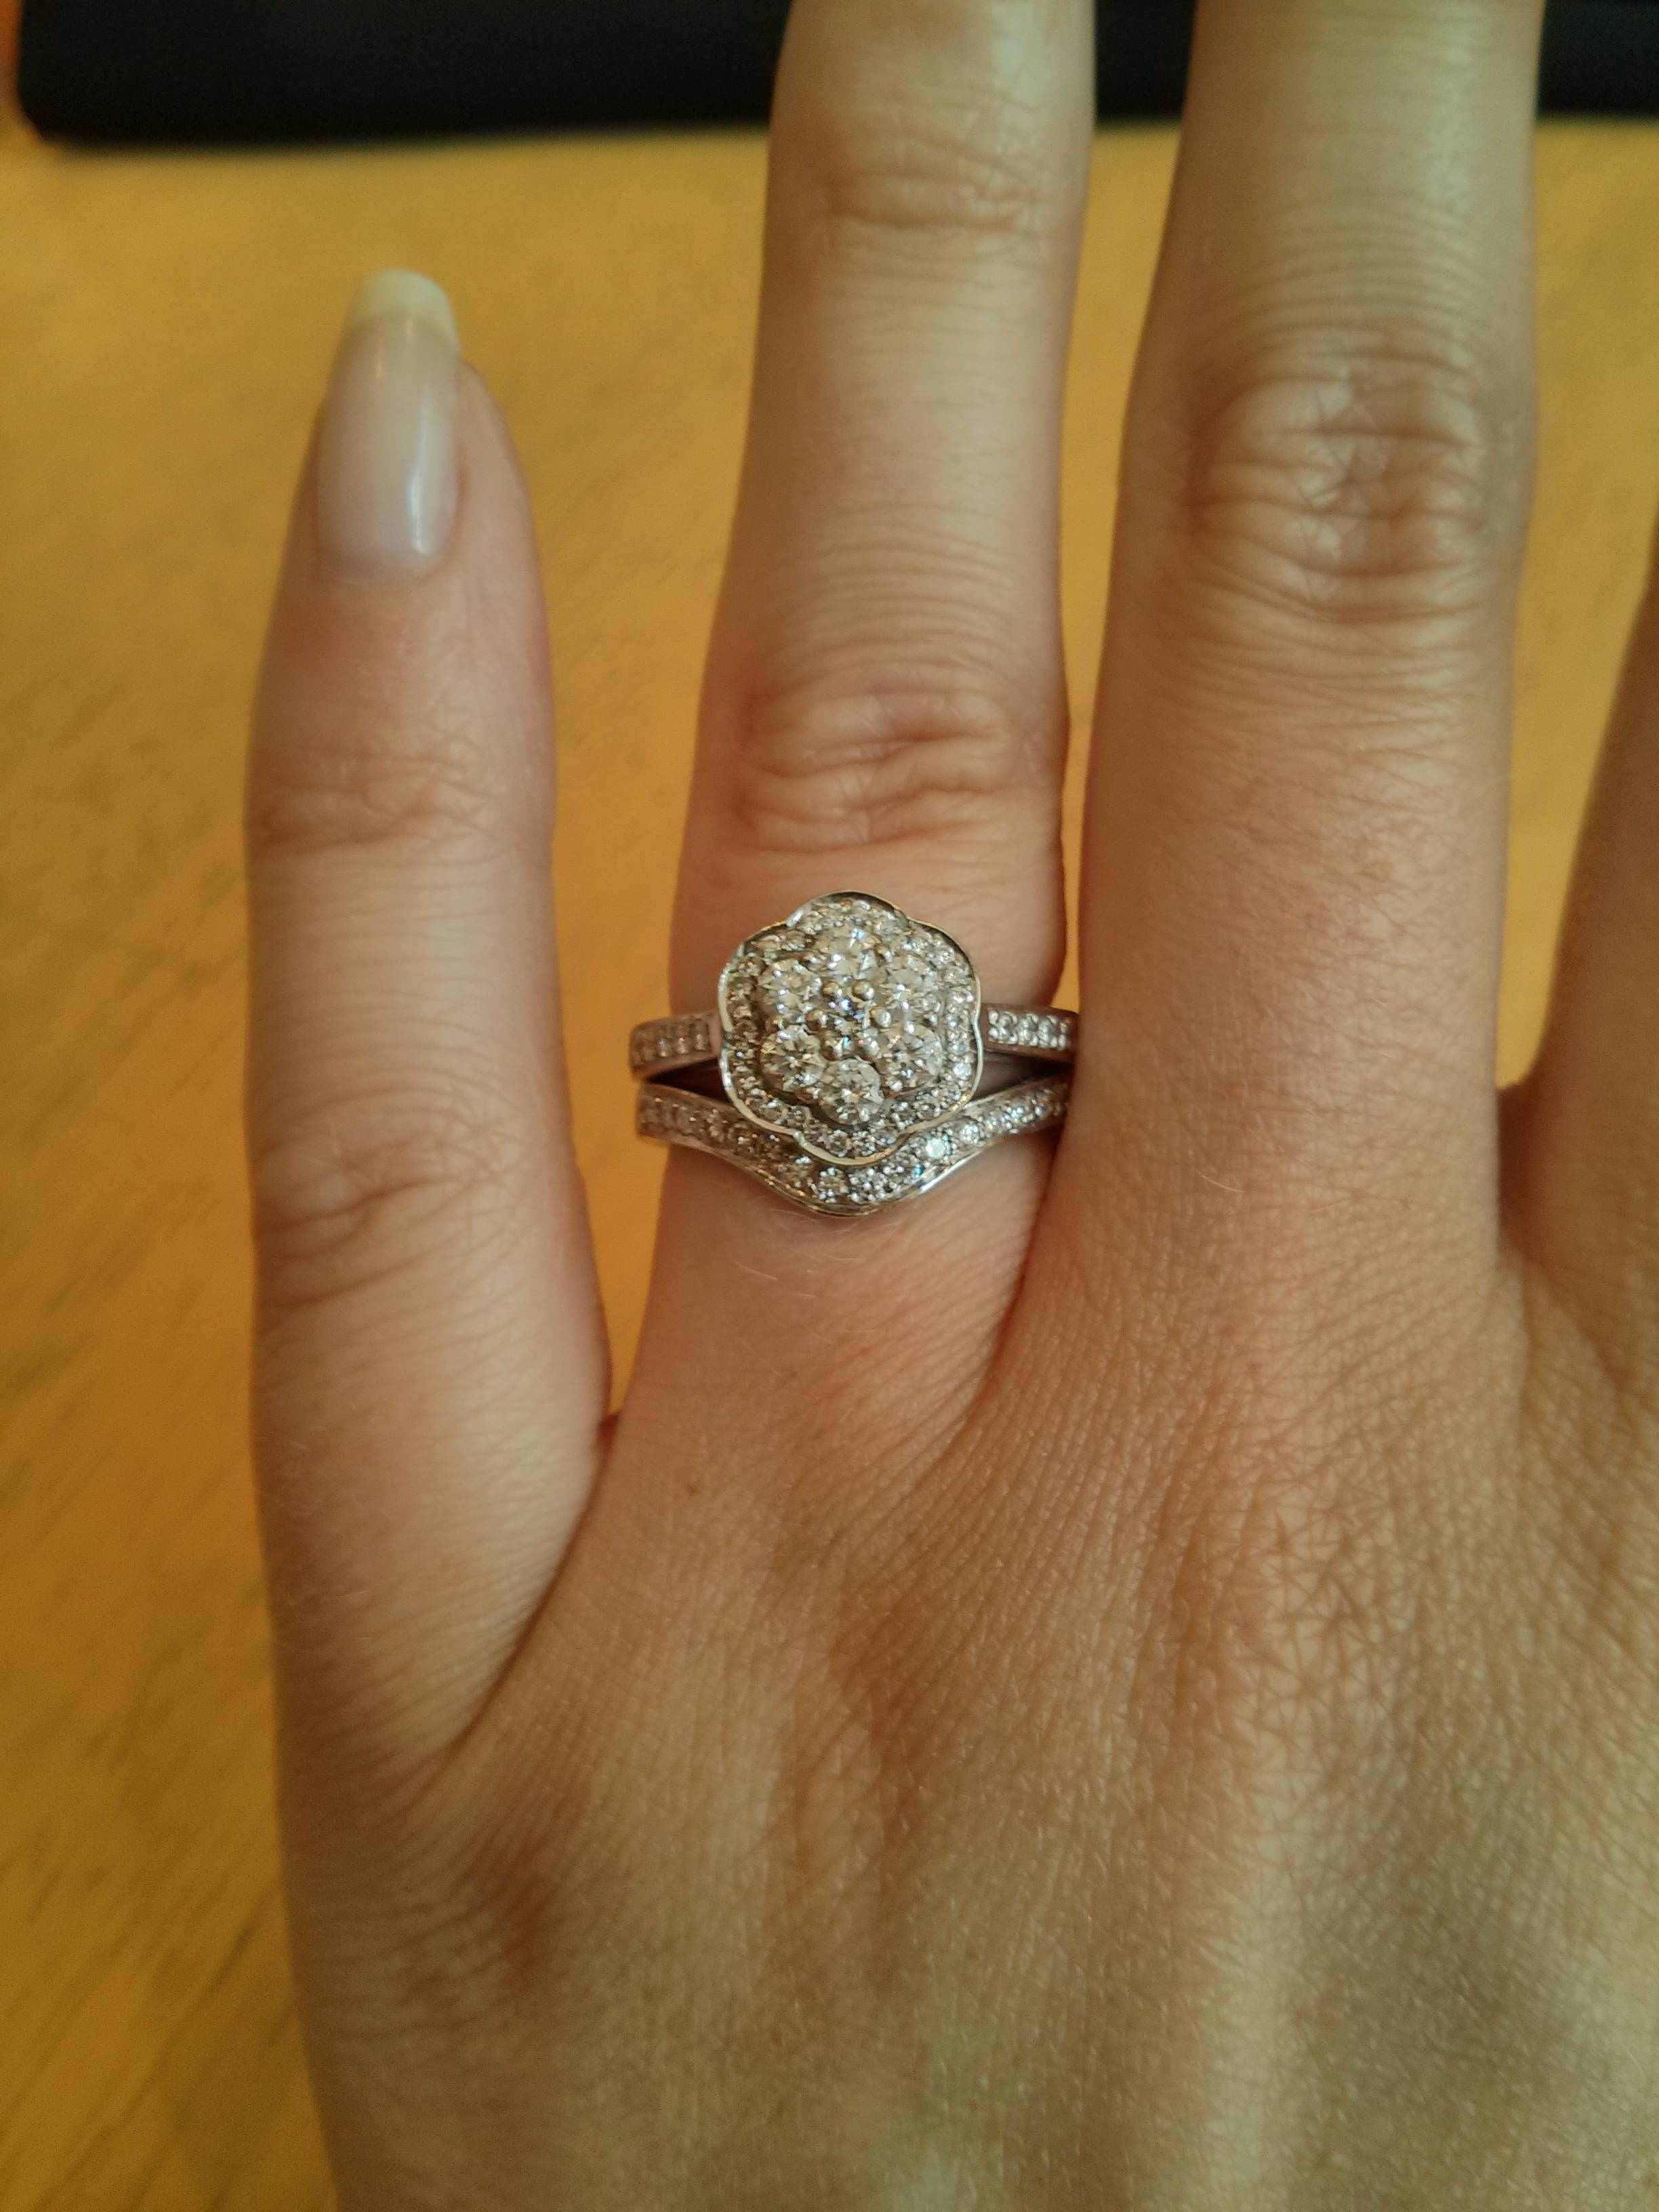 Size Of Small Diamonds For Halo Setting? – Weddingbee In Small Size Engagement Rings (View 11 of 15)